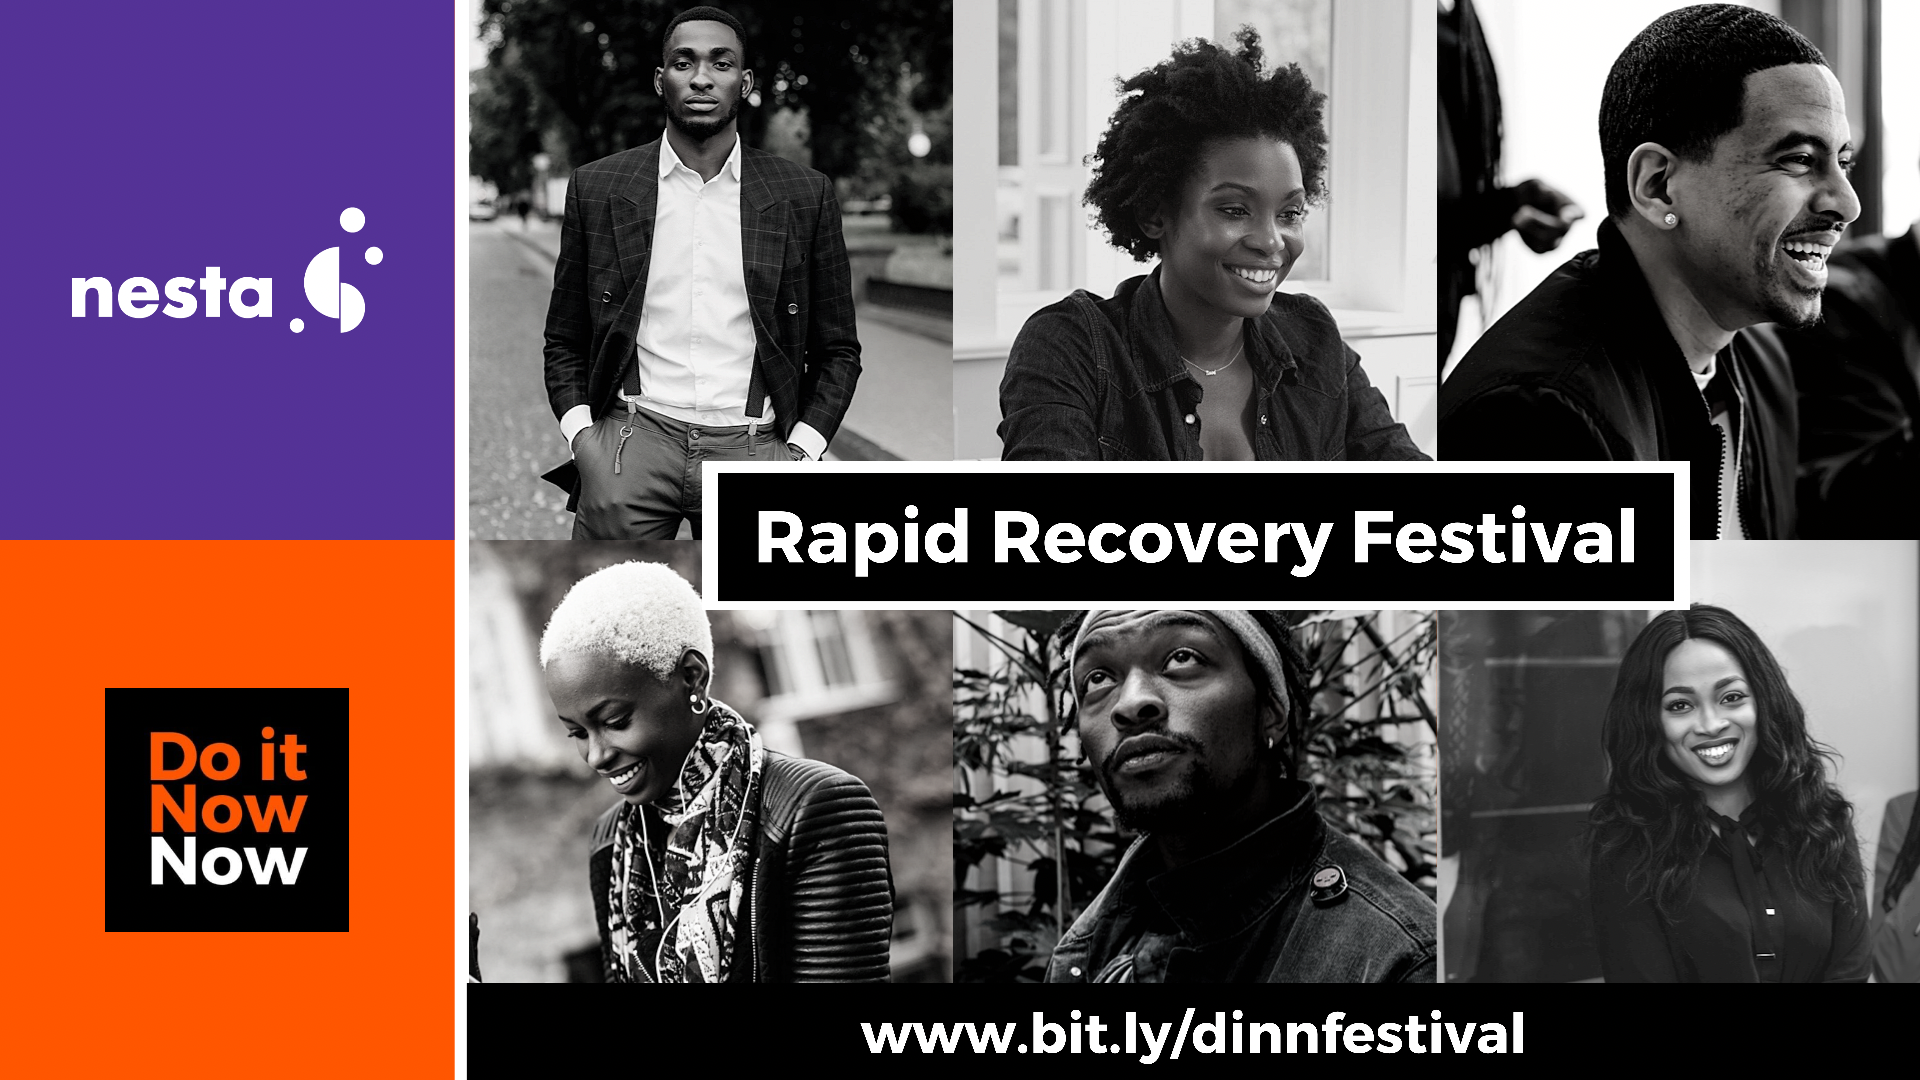 Rapid Recovery Festival: In Partnership With Do It Now Now And Nesta